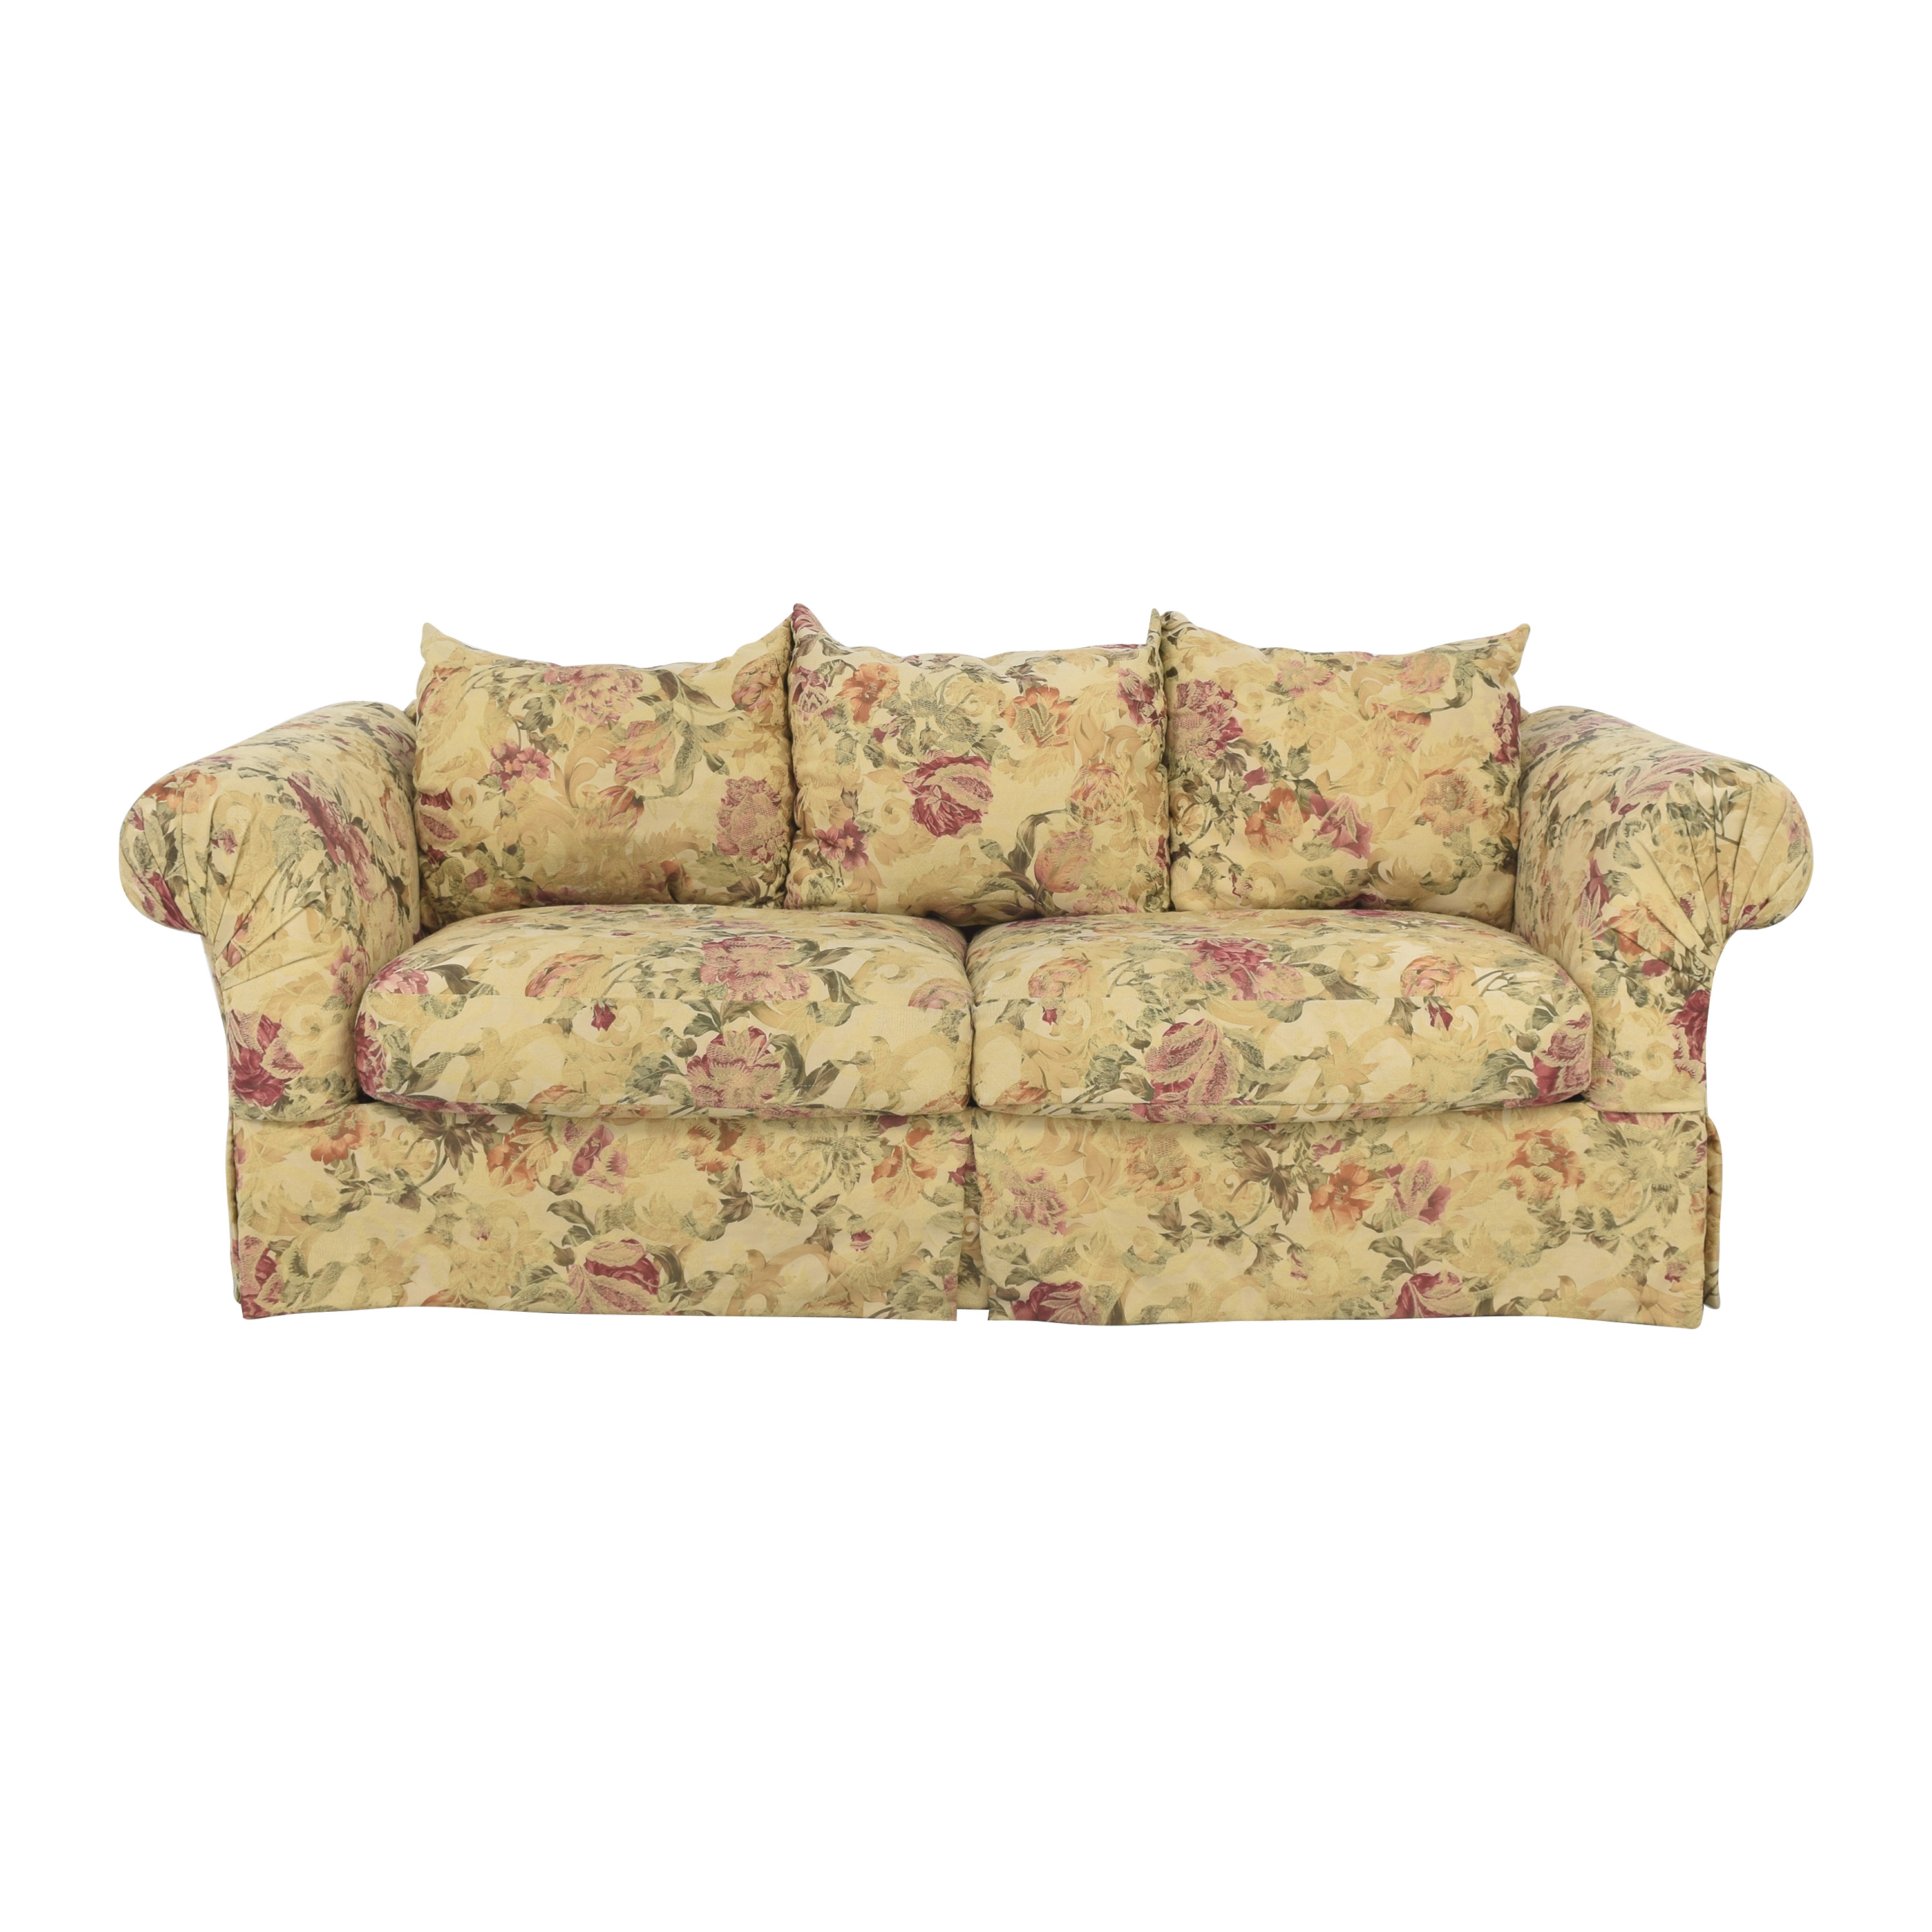 Rowe Furniture Rowe Three Cushion Sofa used